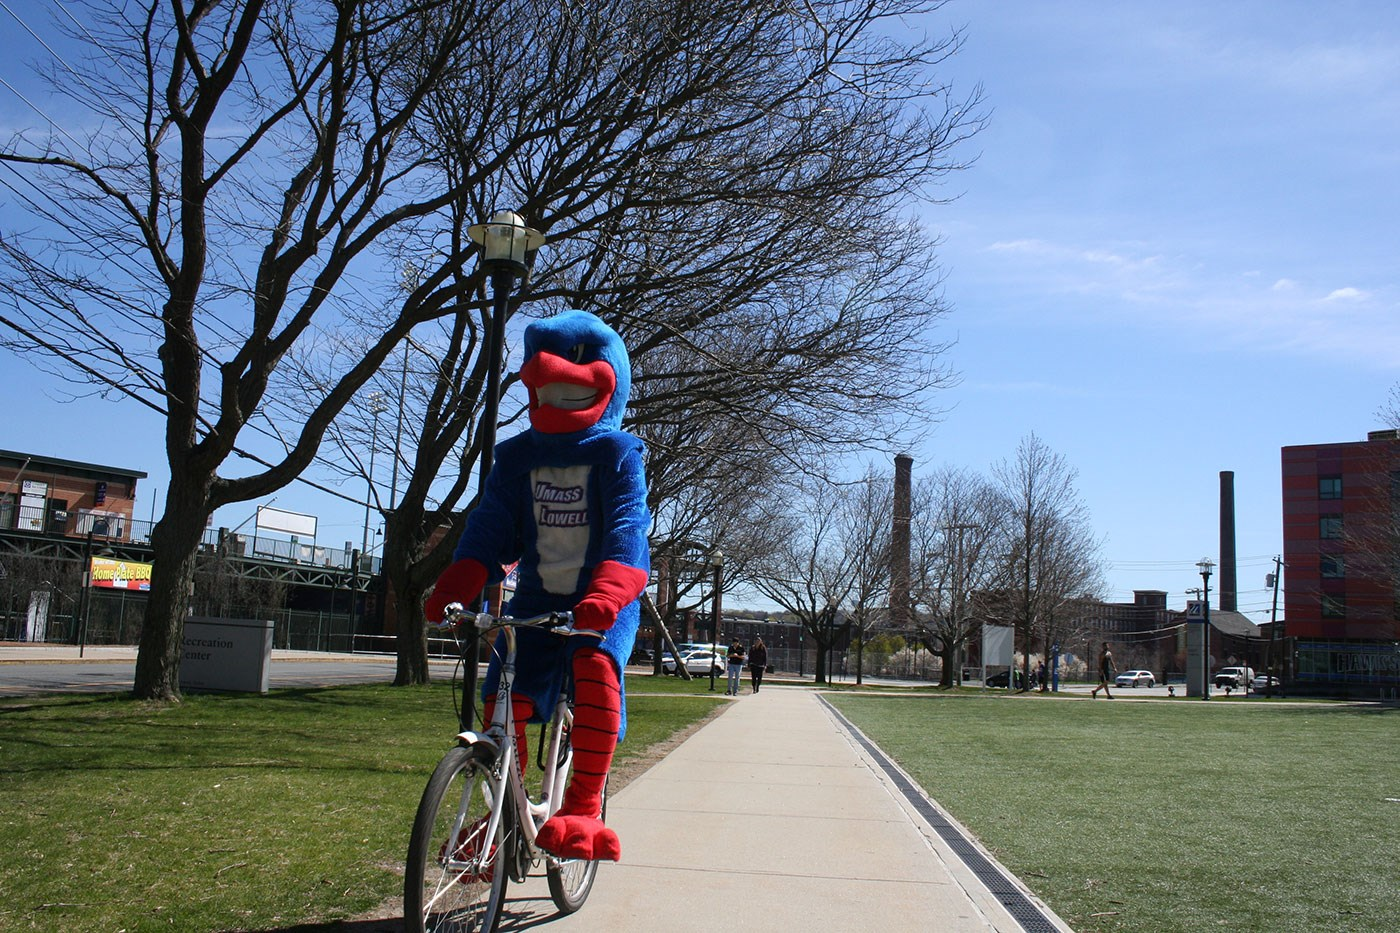 Umass Lowell's mascot Rowdy, riding a bike.